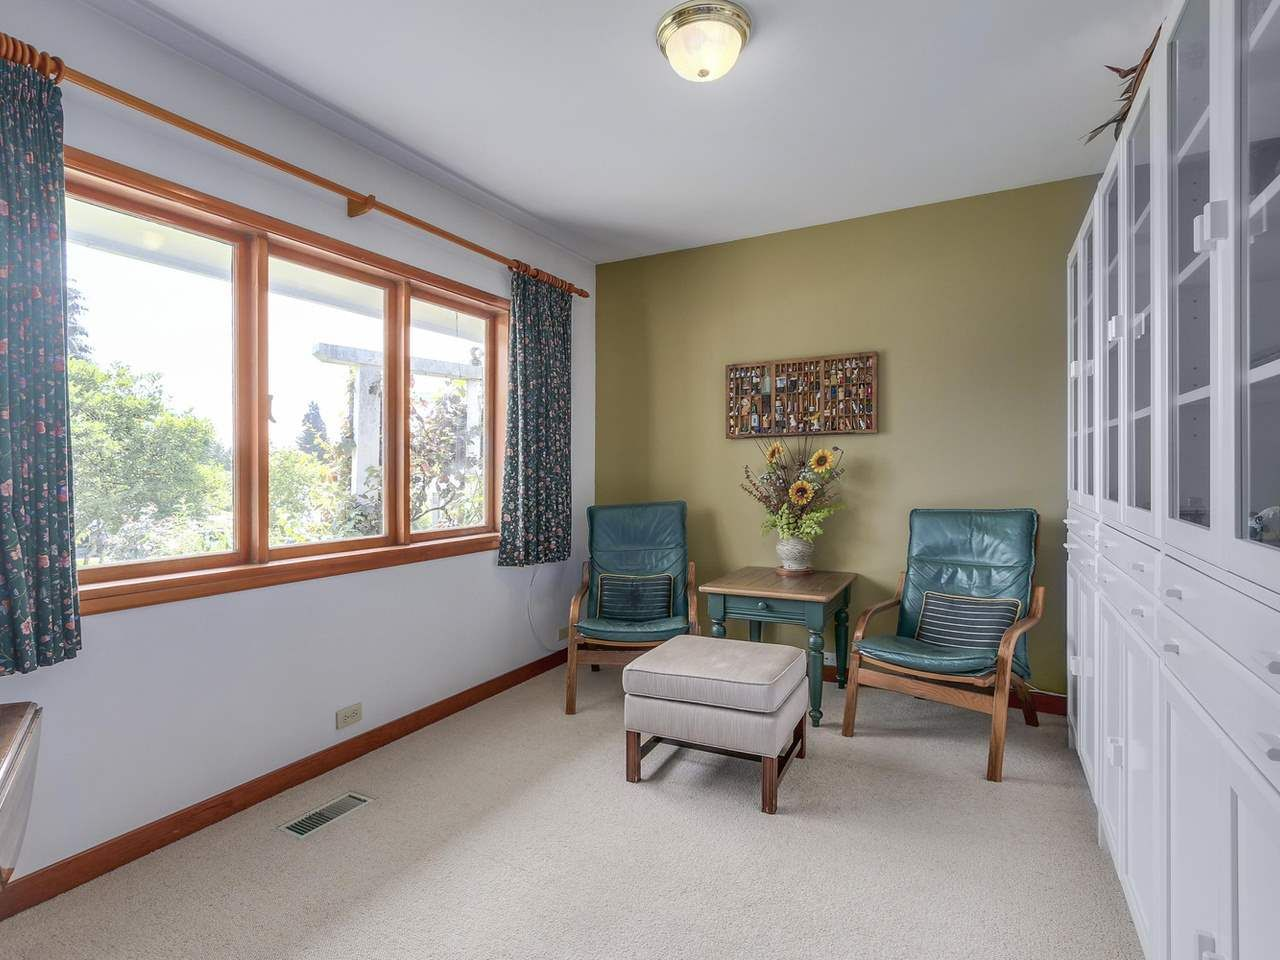 Photo 2: Photos: 587 HARRISON Avenue in Coquitlam: Coquitlam West House for sale : MLS®# R2097877